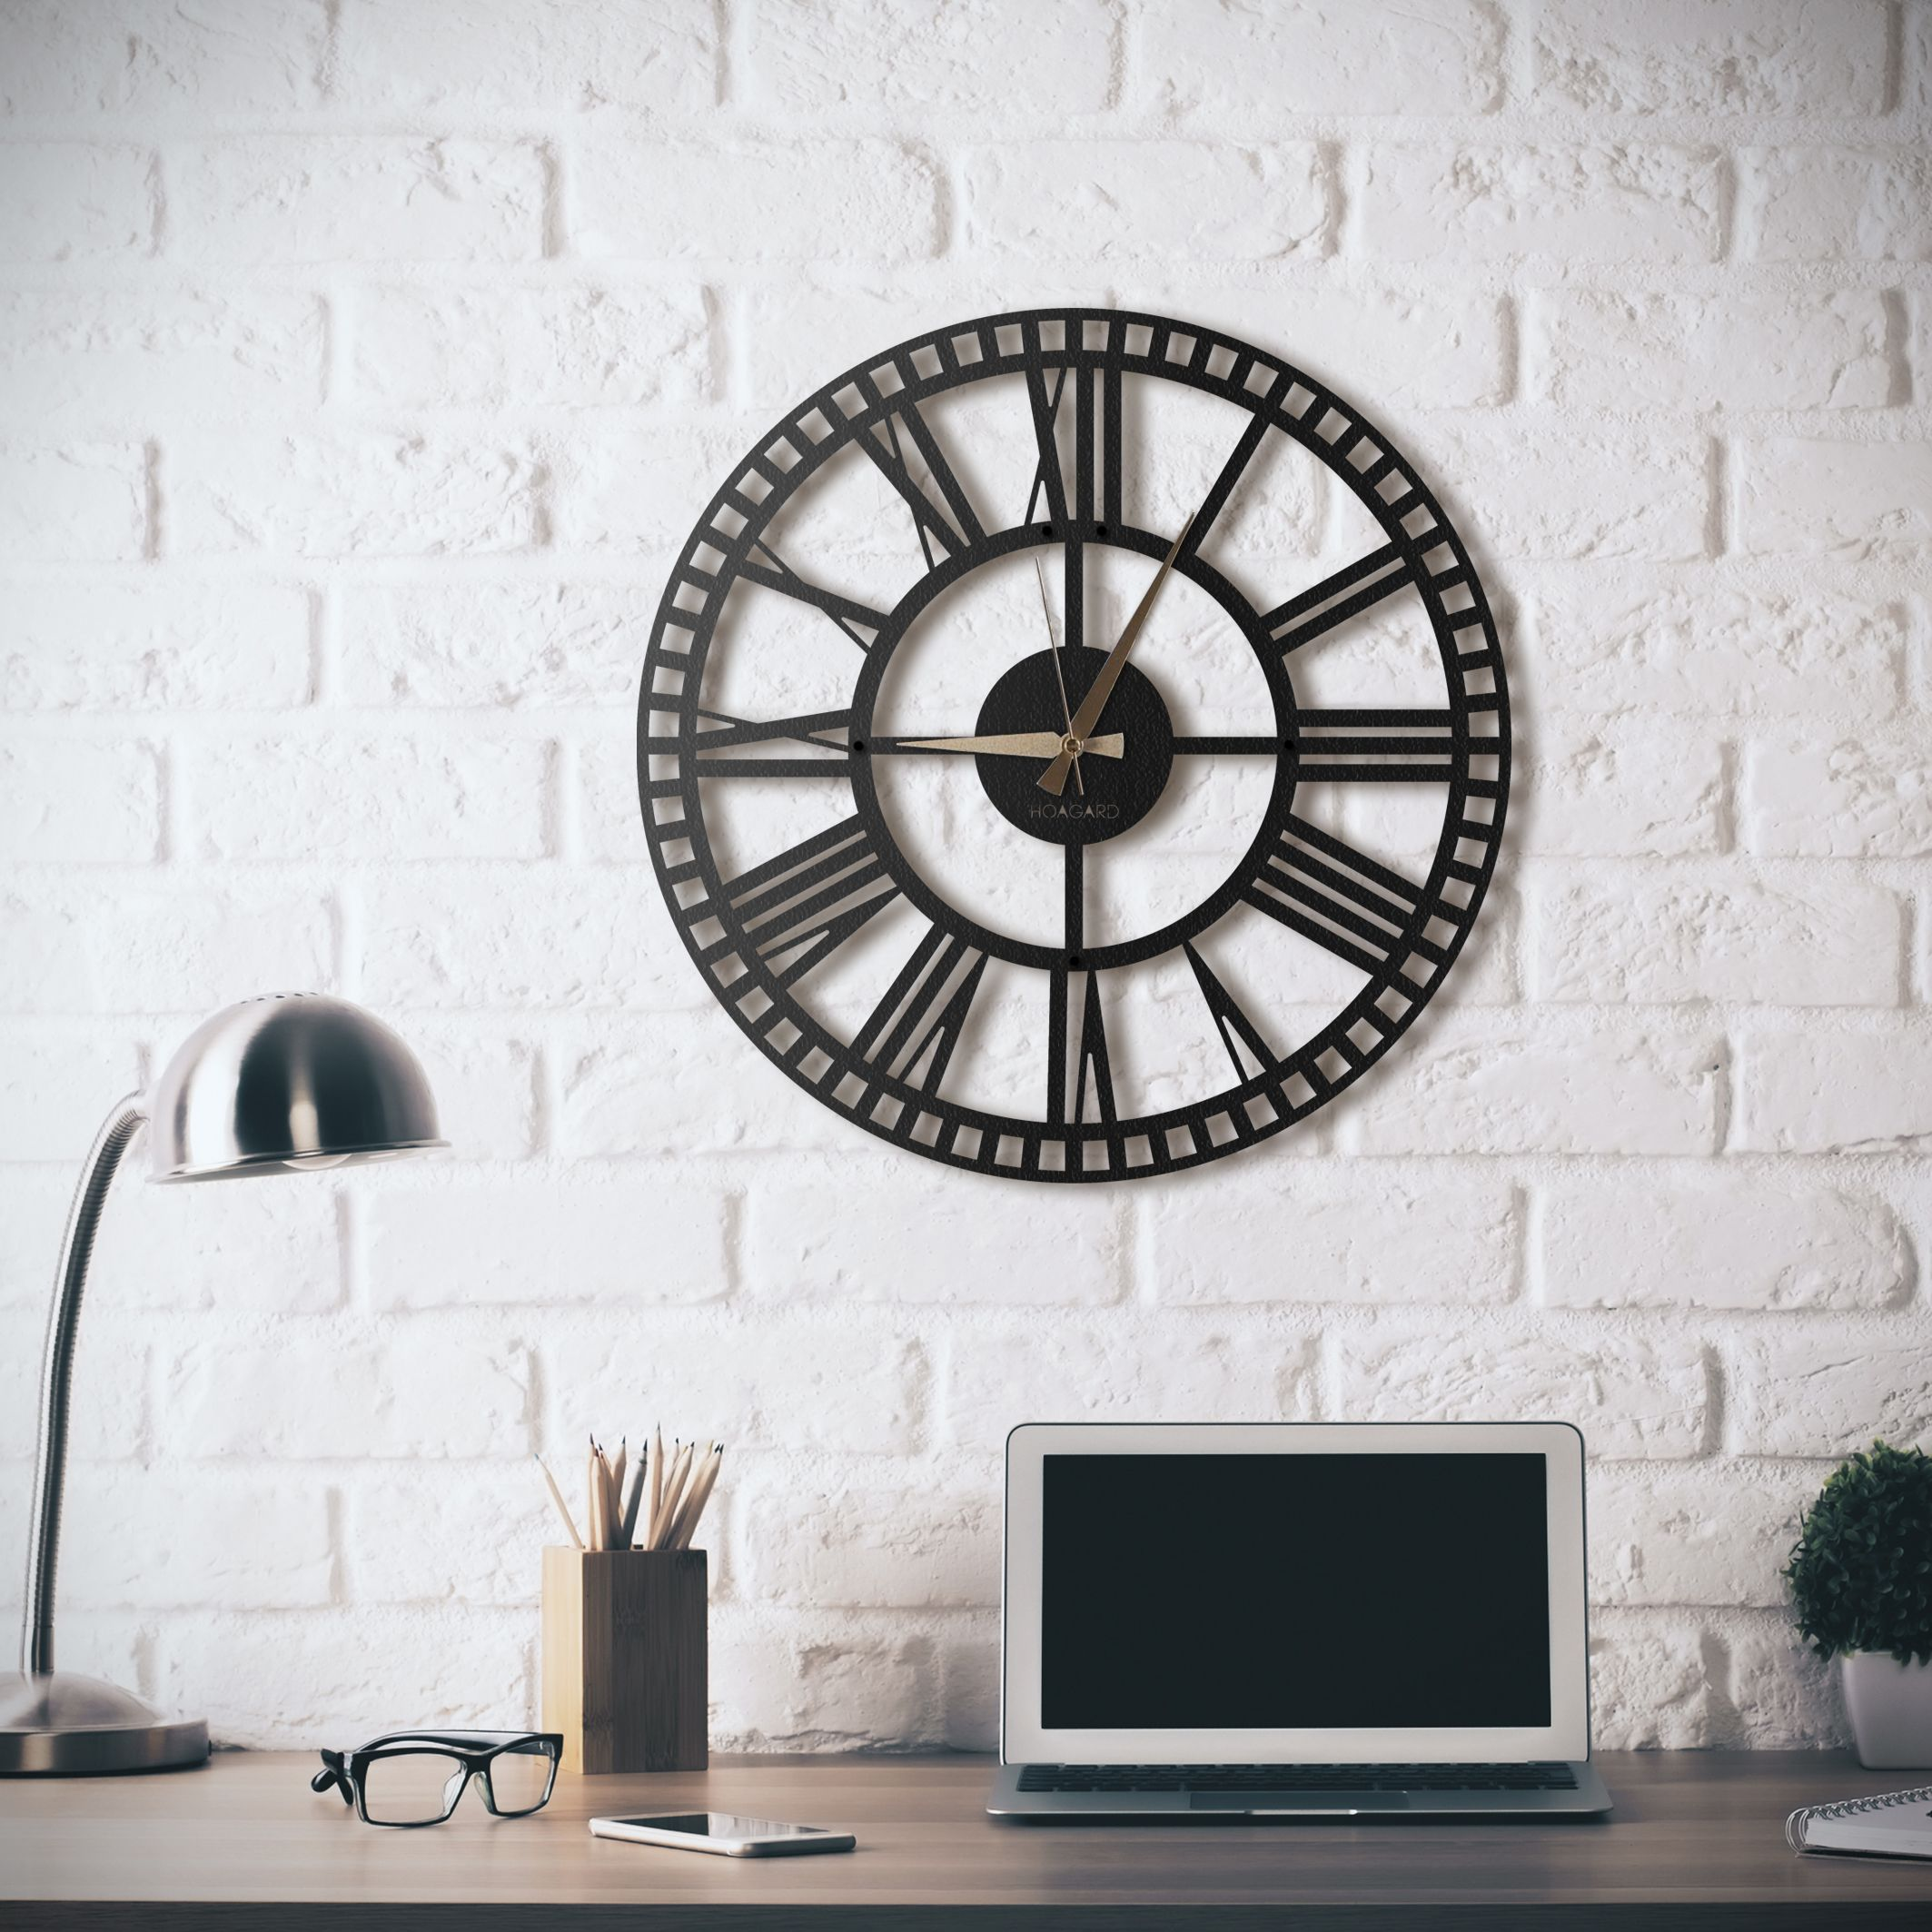 Metal Wall Clock Rail Nothing Is To Come And Nothing Past But An Eternal Now Does Always Last Cowley Wall Clock Clock Wall Clock Design